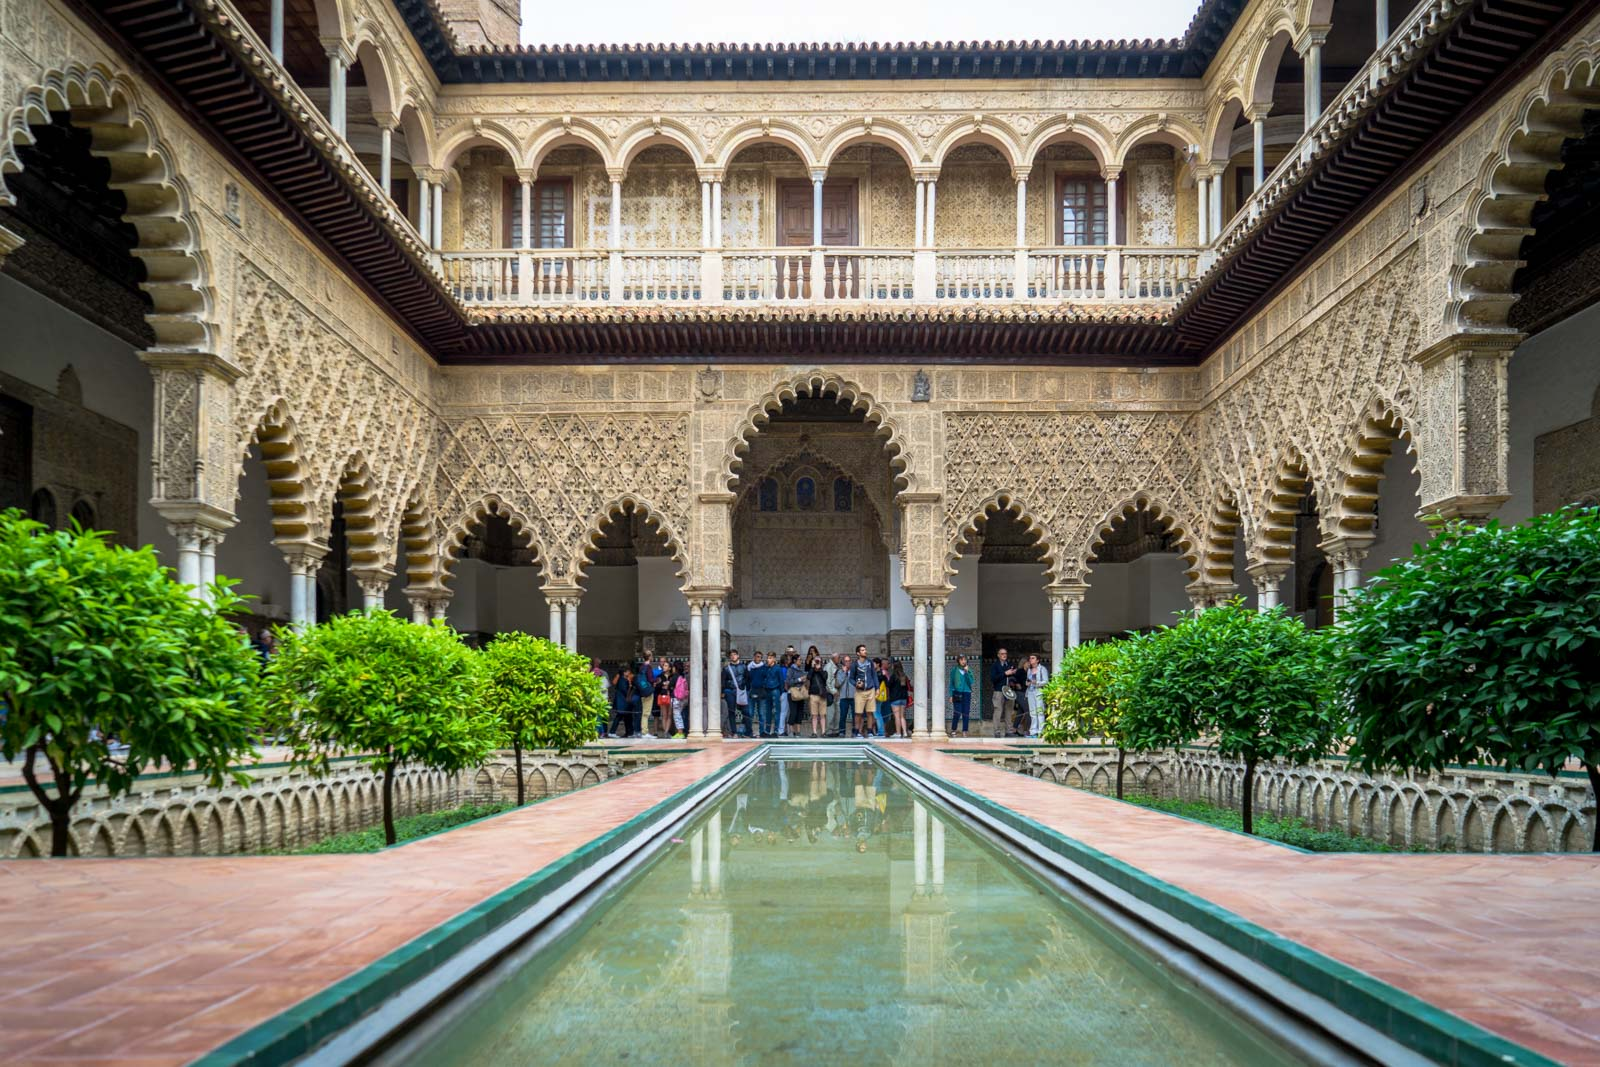 Alcazar of Seville, Spain